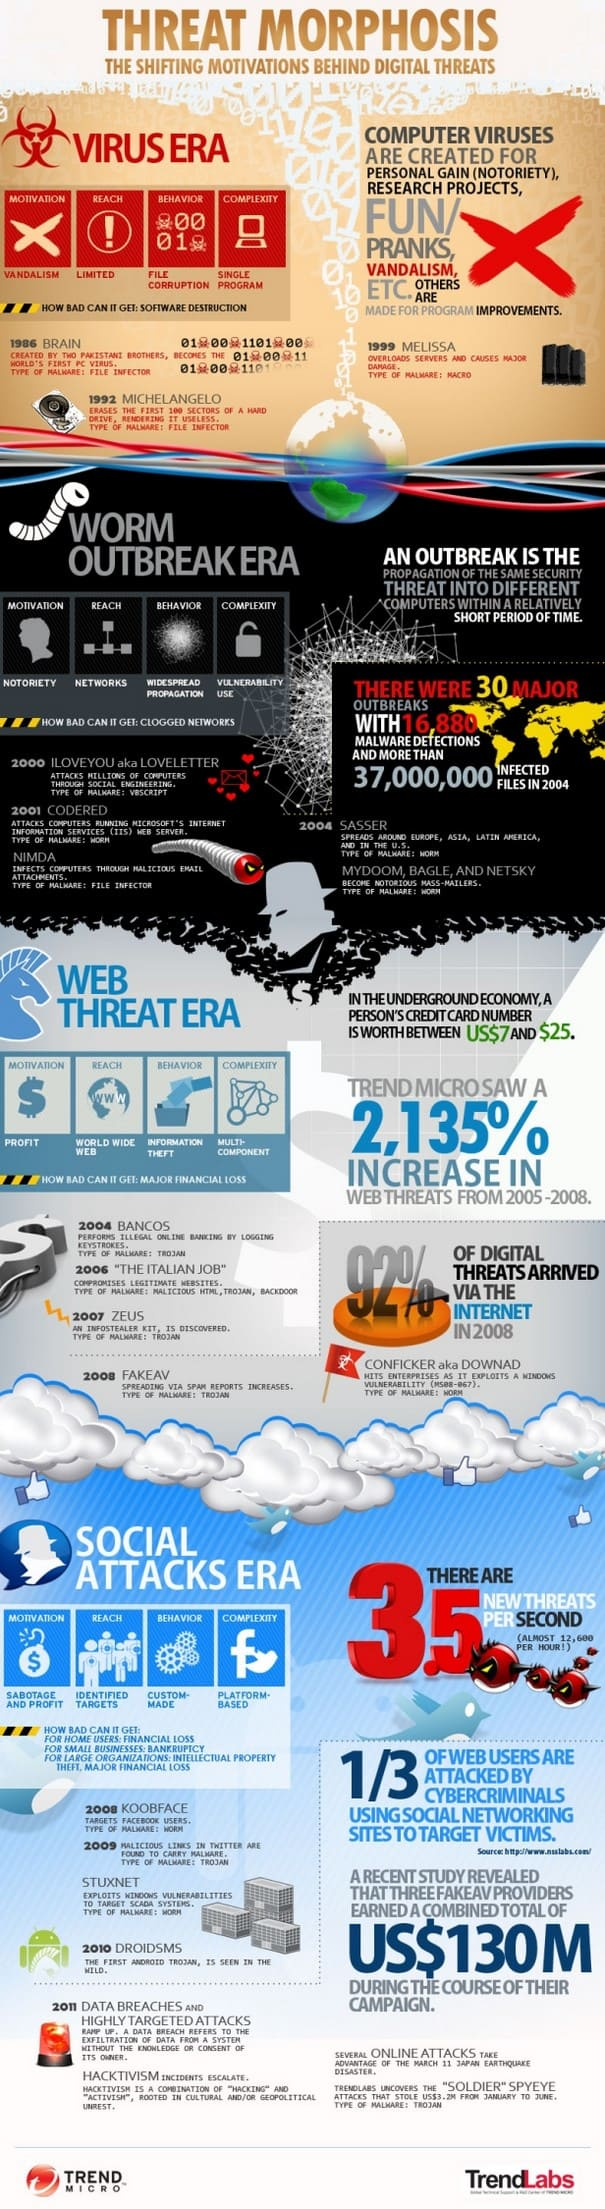 virusevolution infographic